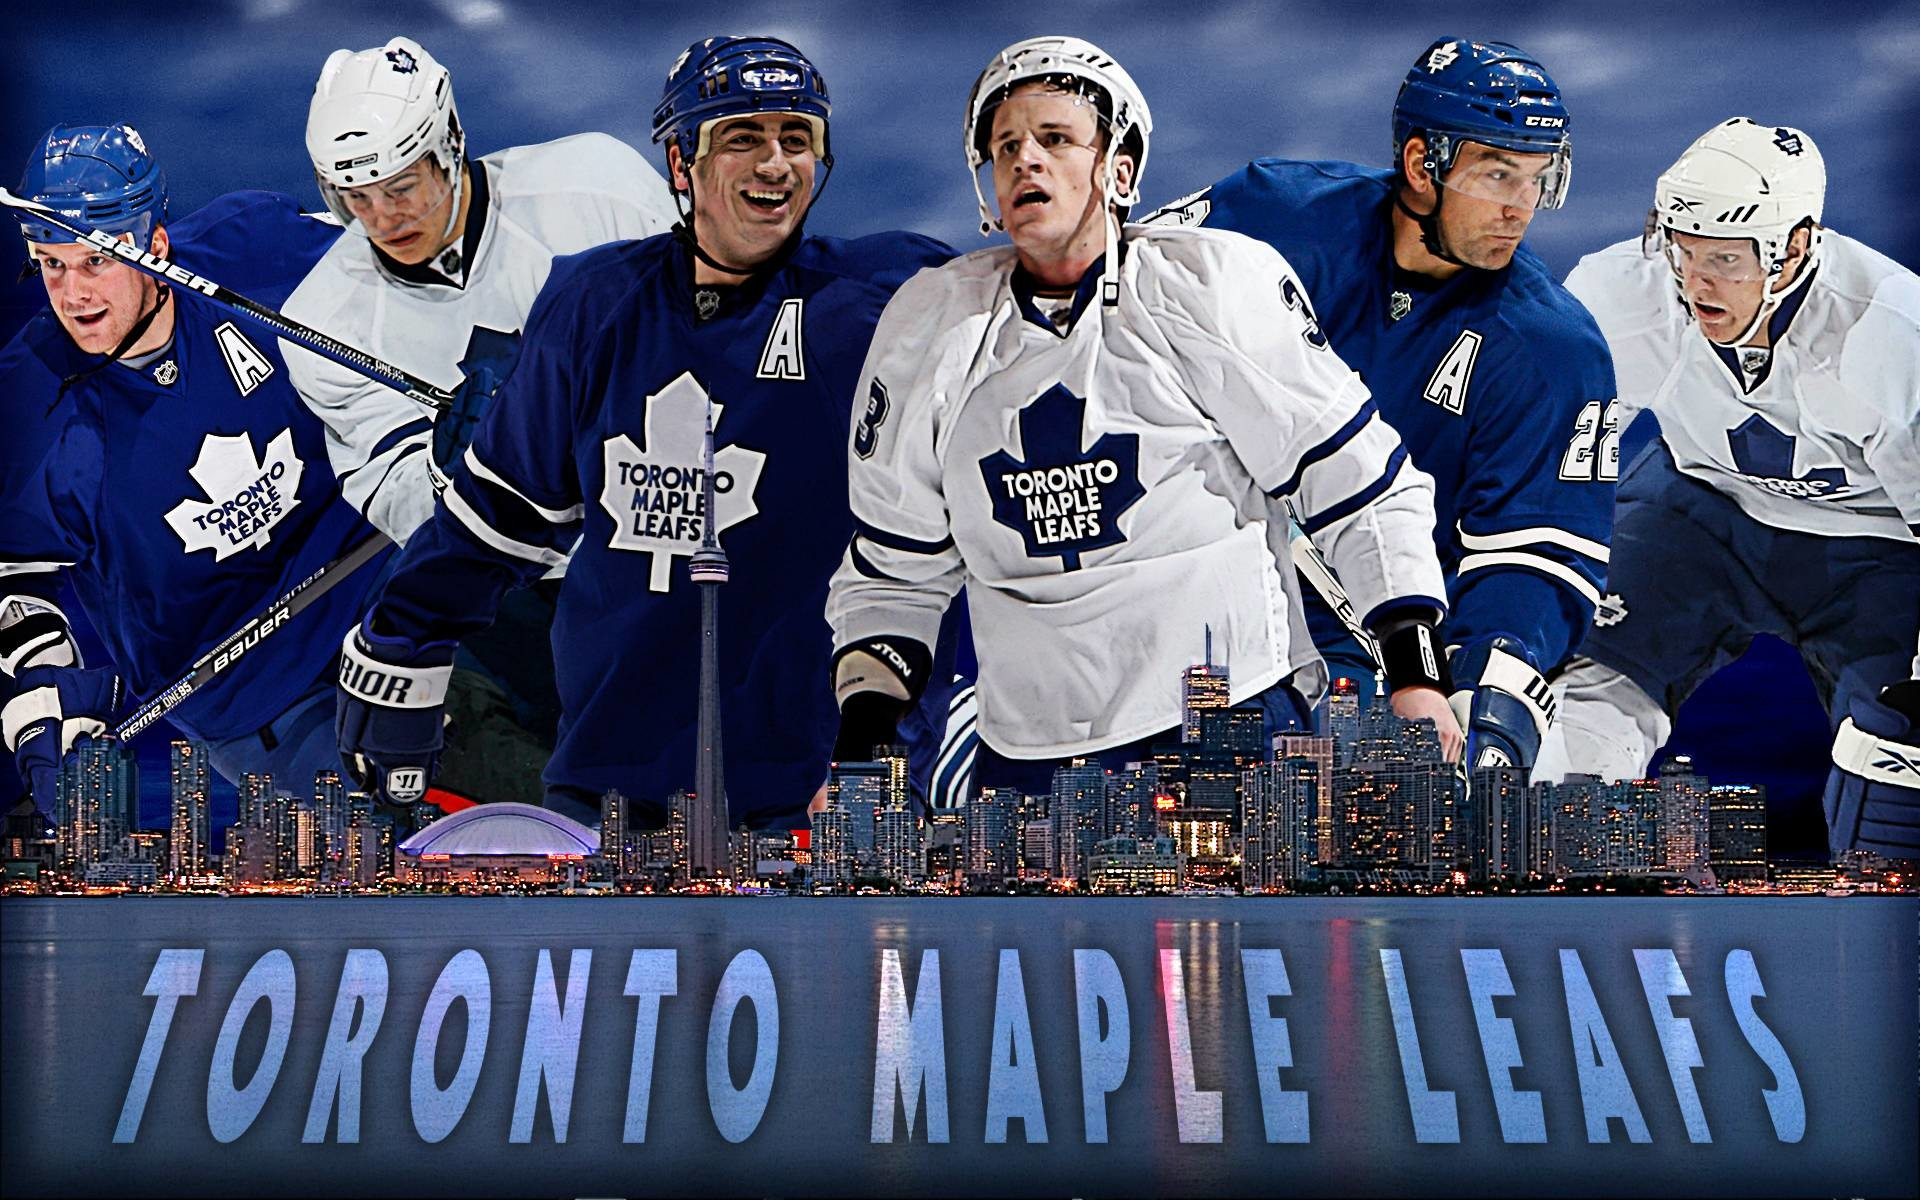 1920x1200 Dion Phaneuf Toronto Maple Leafs wallpaper - 391309